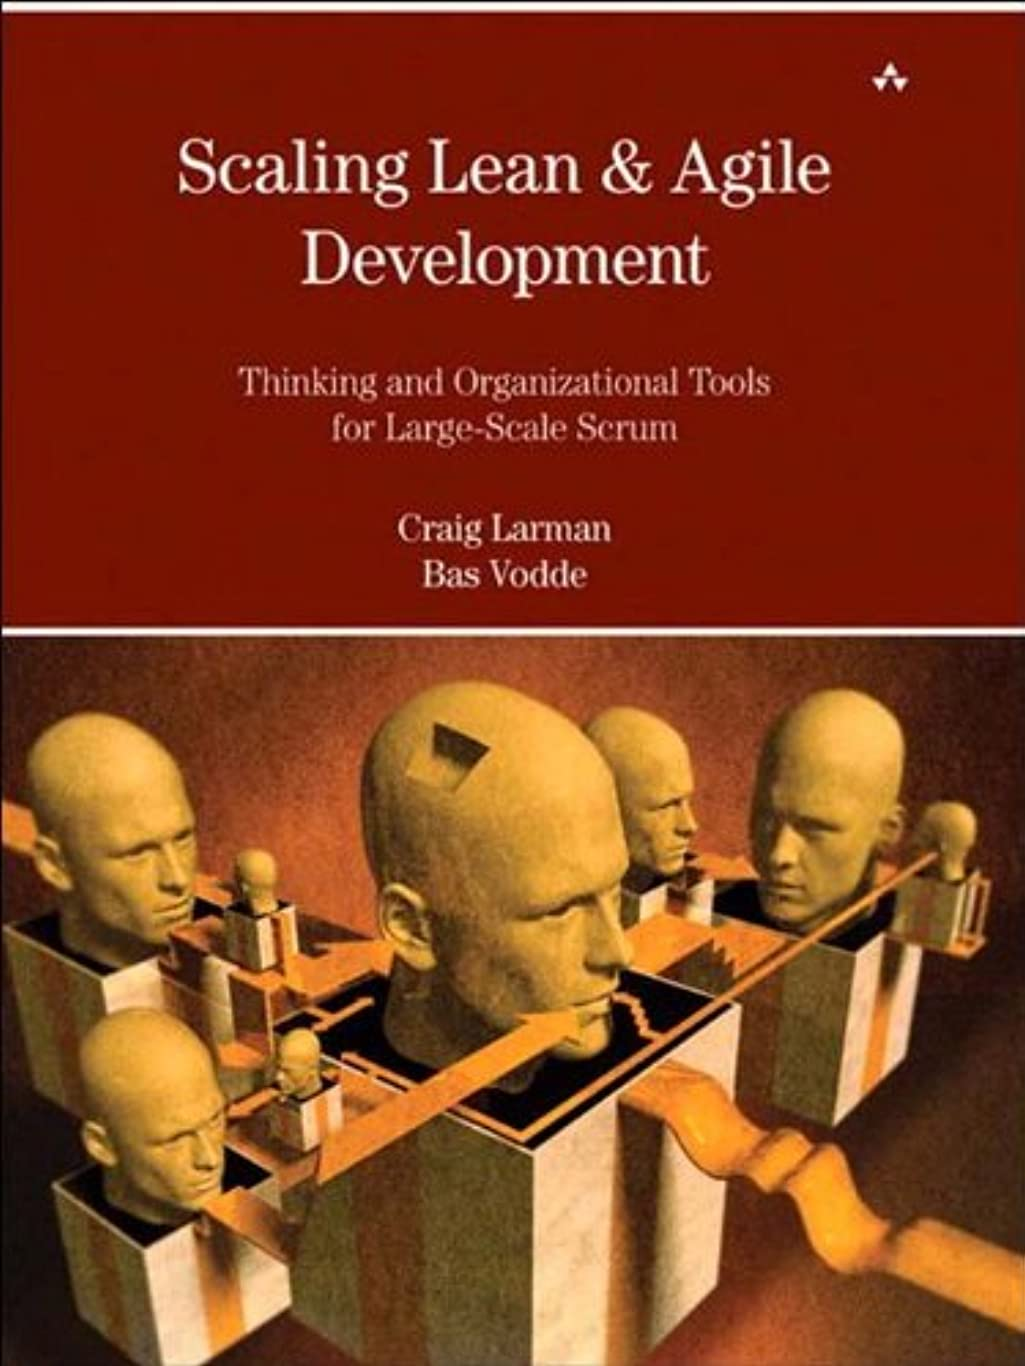 受け皿透明に通行人Scaling Lean & Agile Development: Thinking and Organizational Tools for Large-Scale Scrum (Agile Software Development Series) (English Edition)